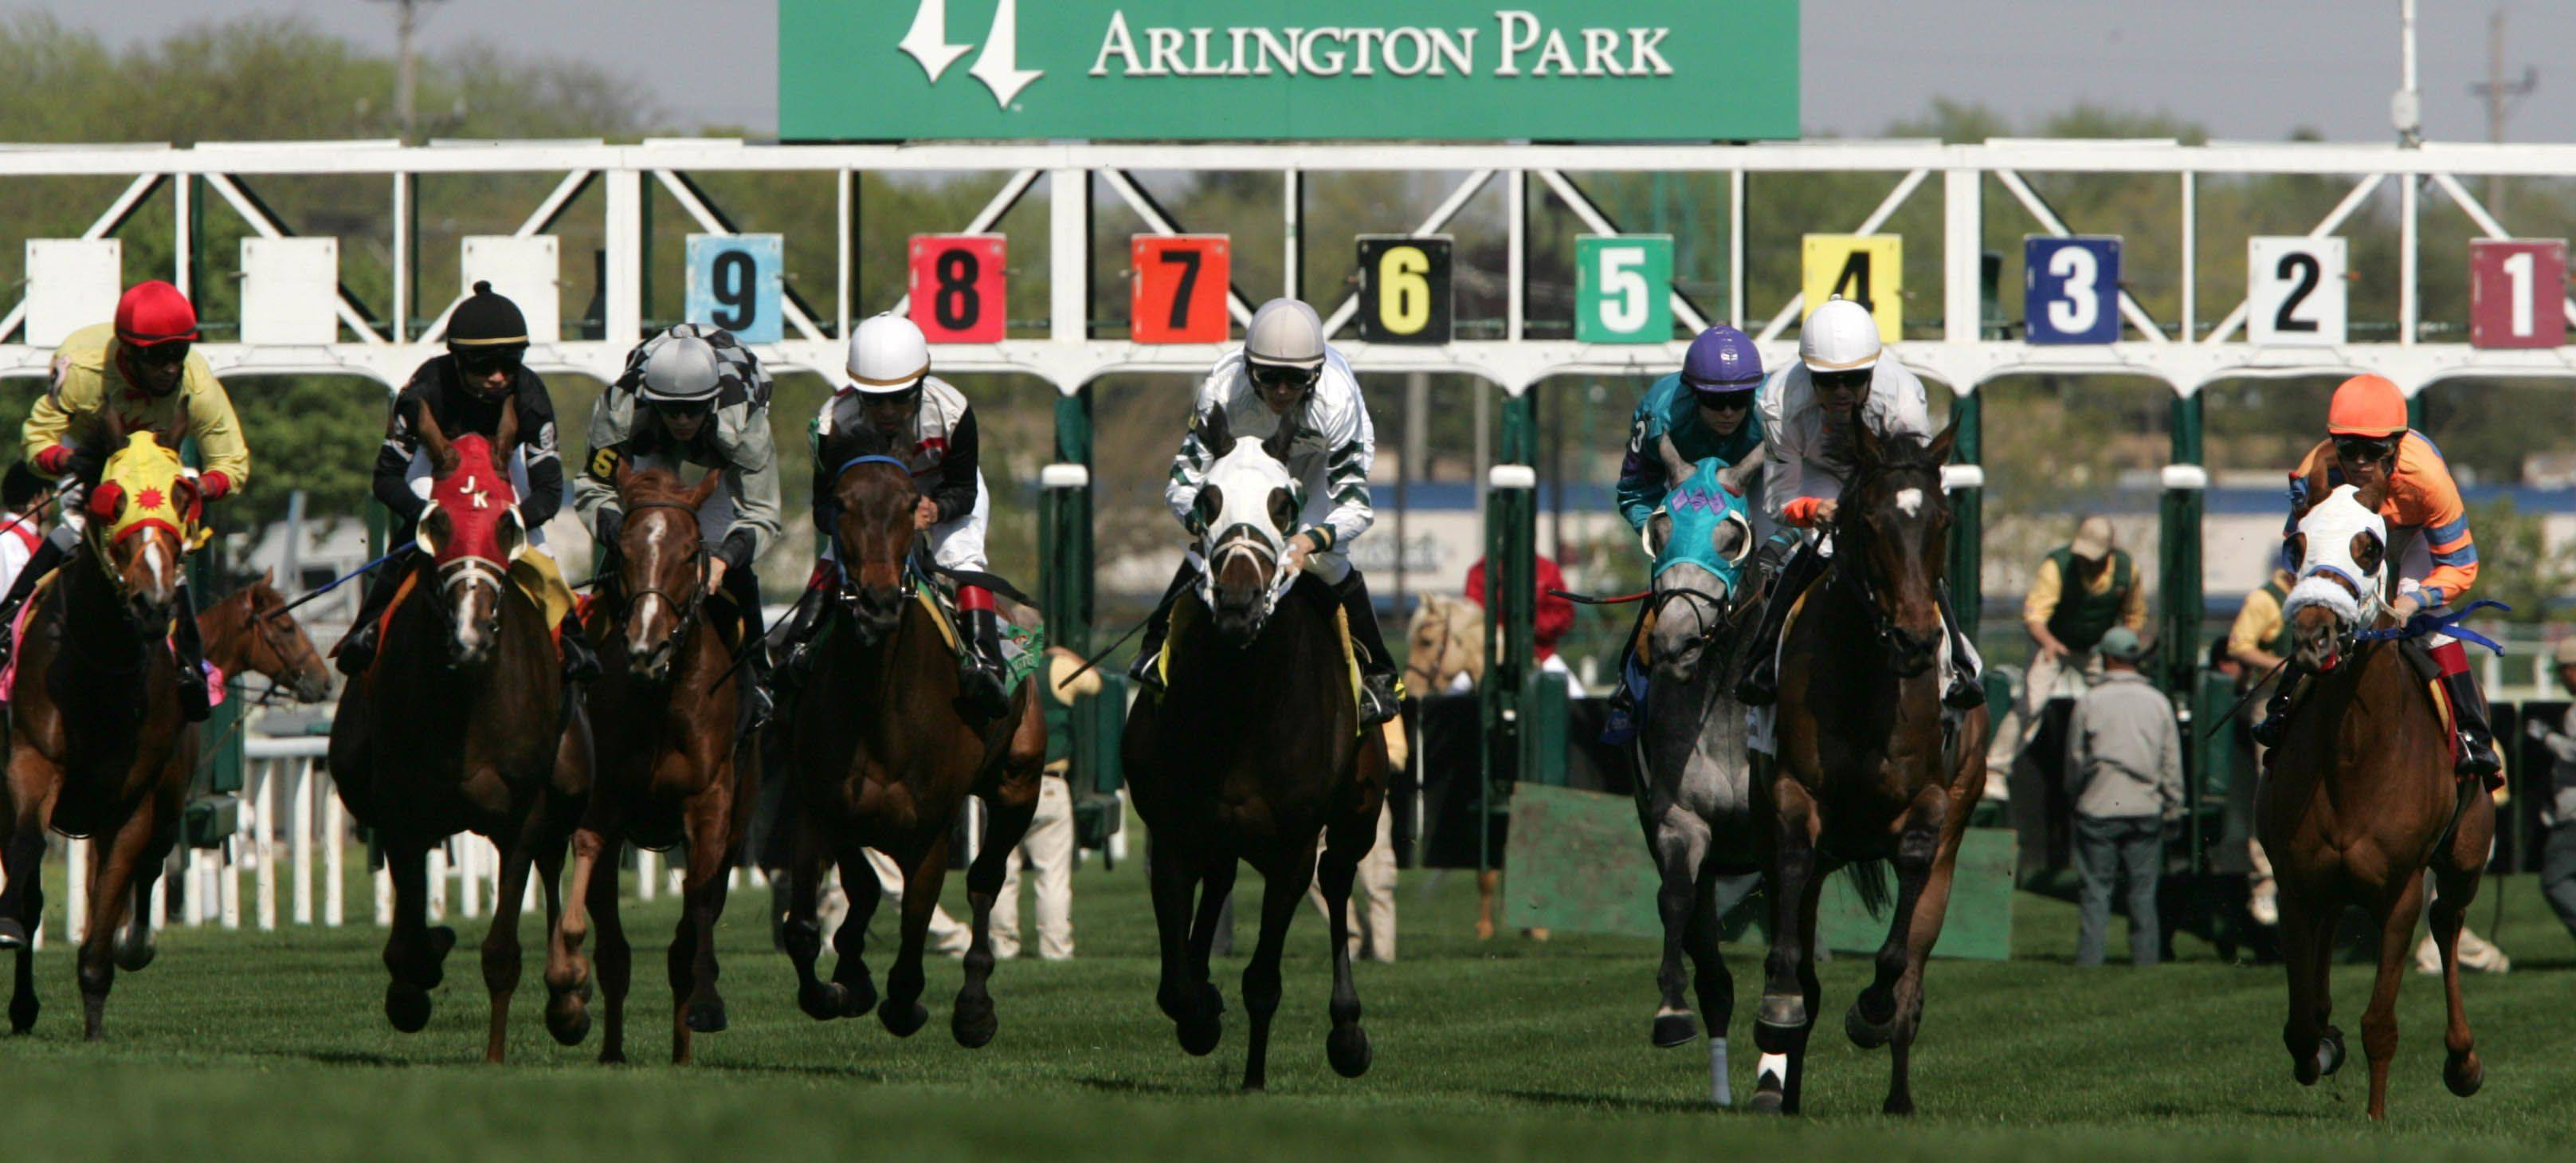 Arlington Park, a fixture of the community since 1927, faces a rocky future, some fear.